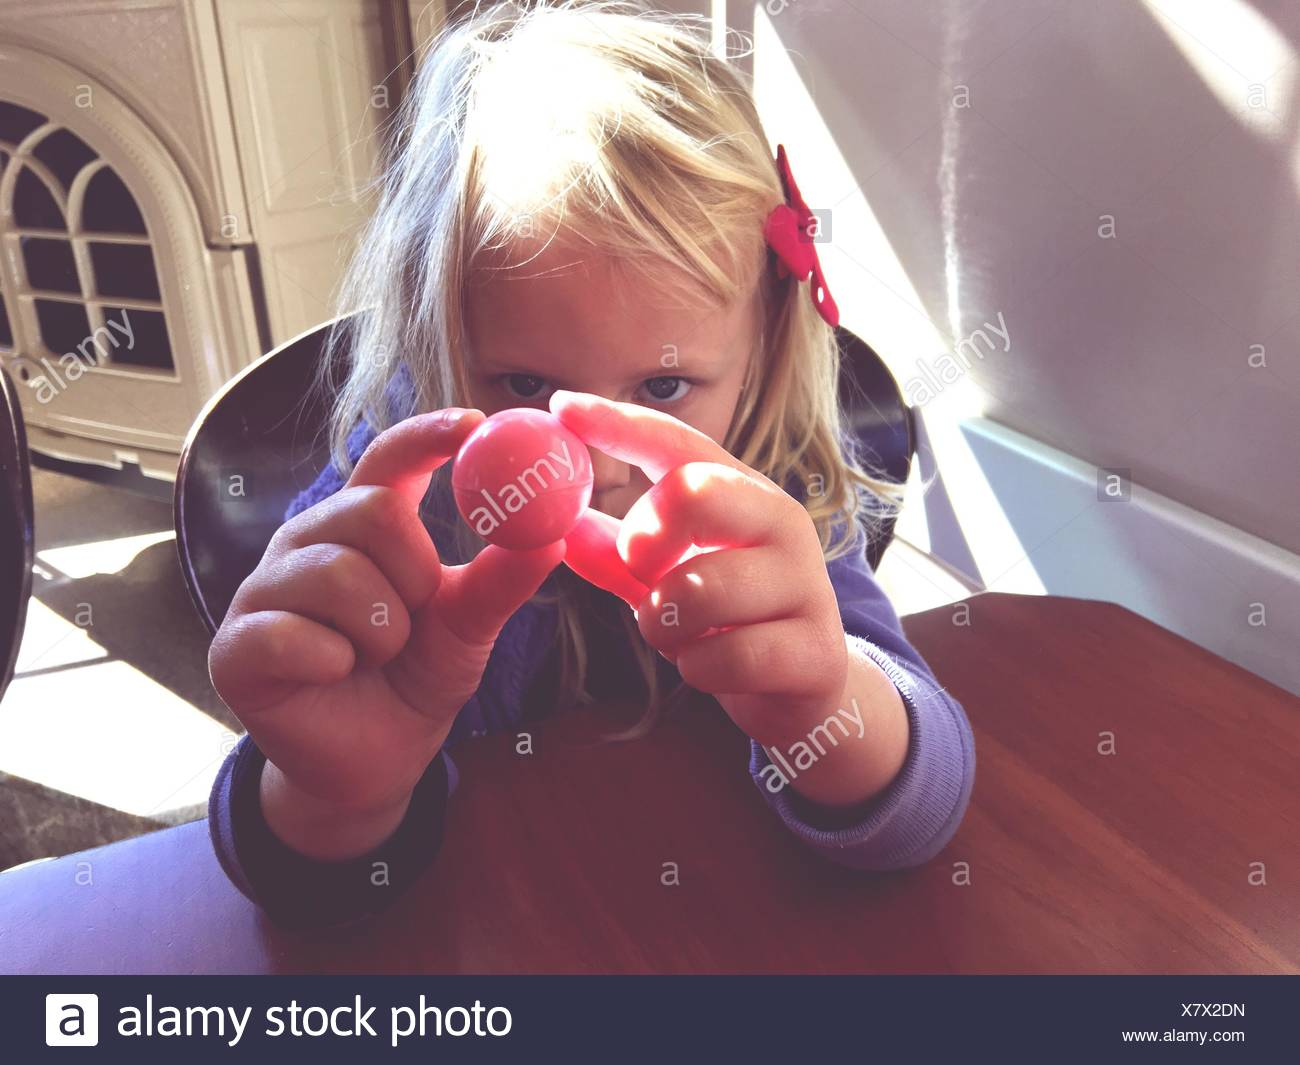 Close-Up Of Blond Girl With Ball At Home - Stock Image